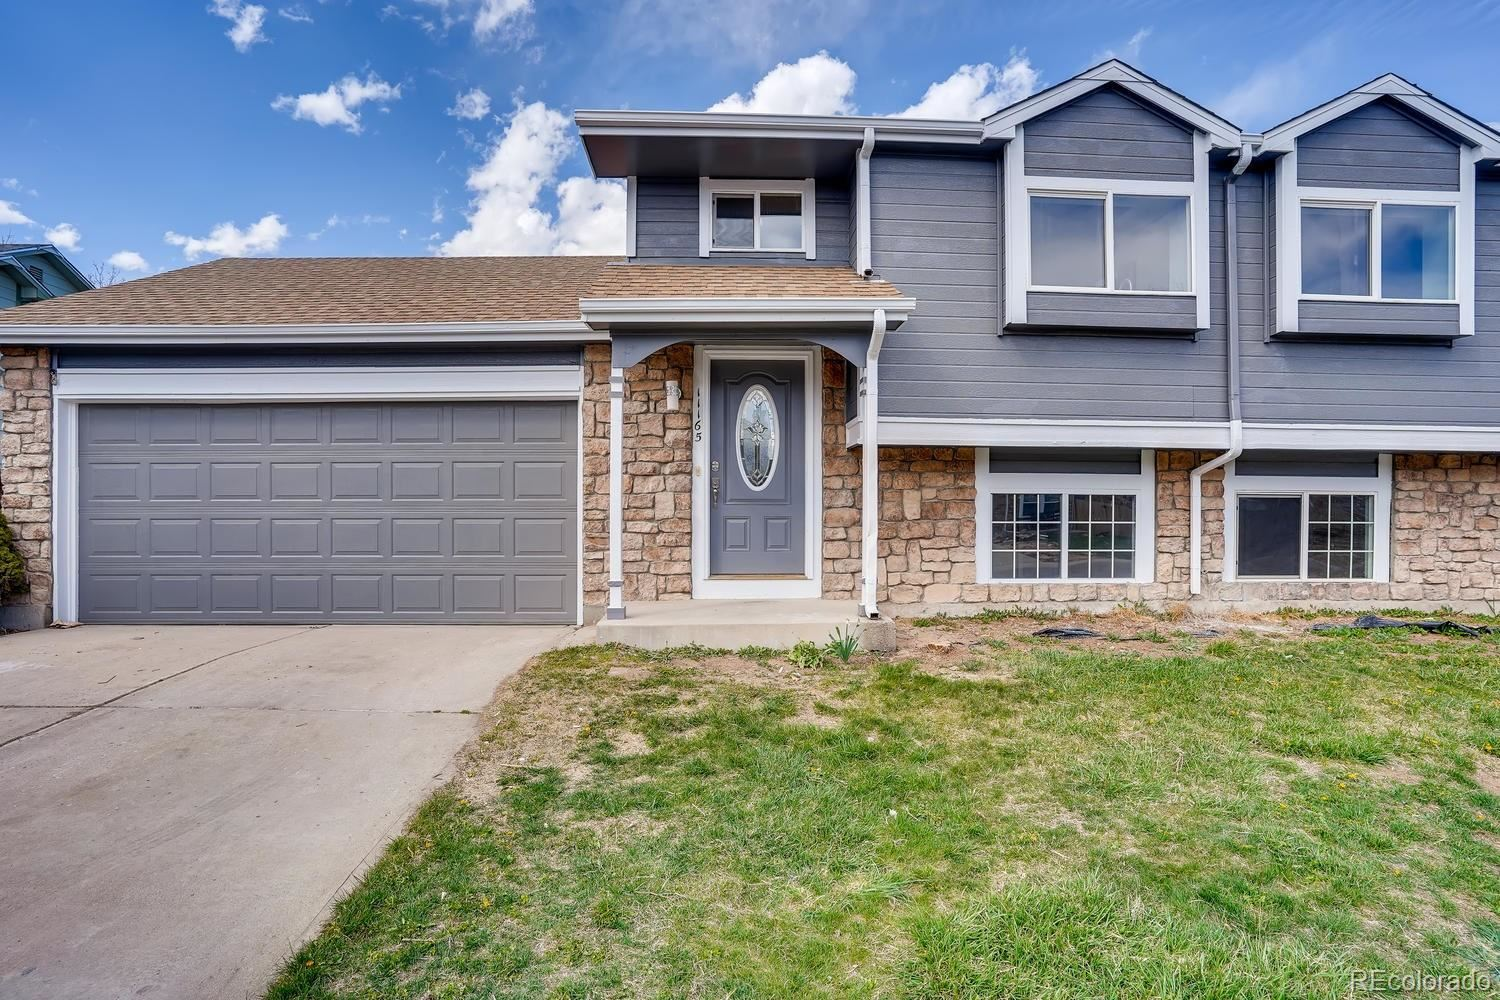 11165 W Bowles Place, Littleton, CO 80127 - #: 5364232